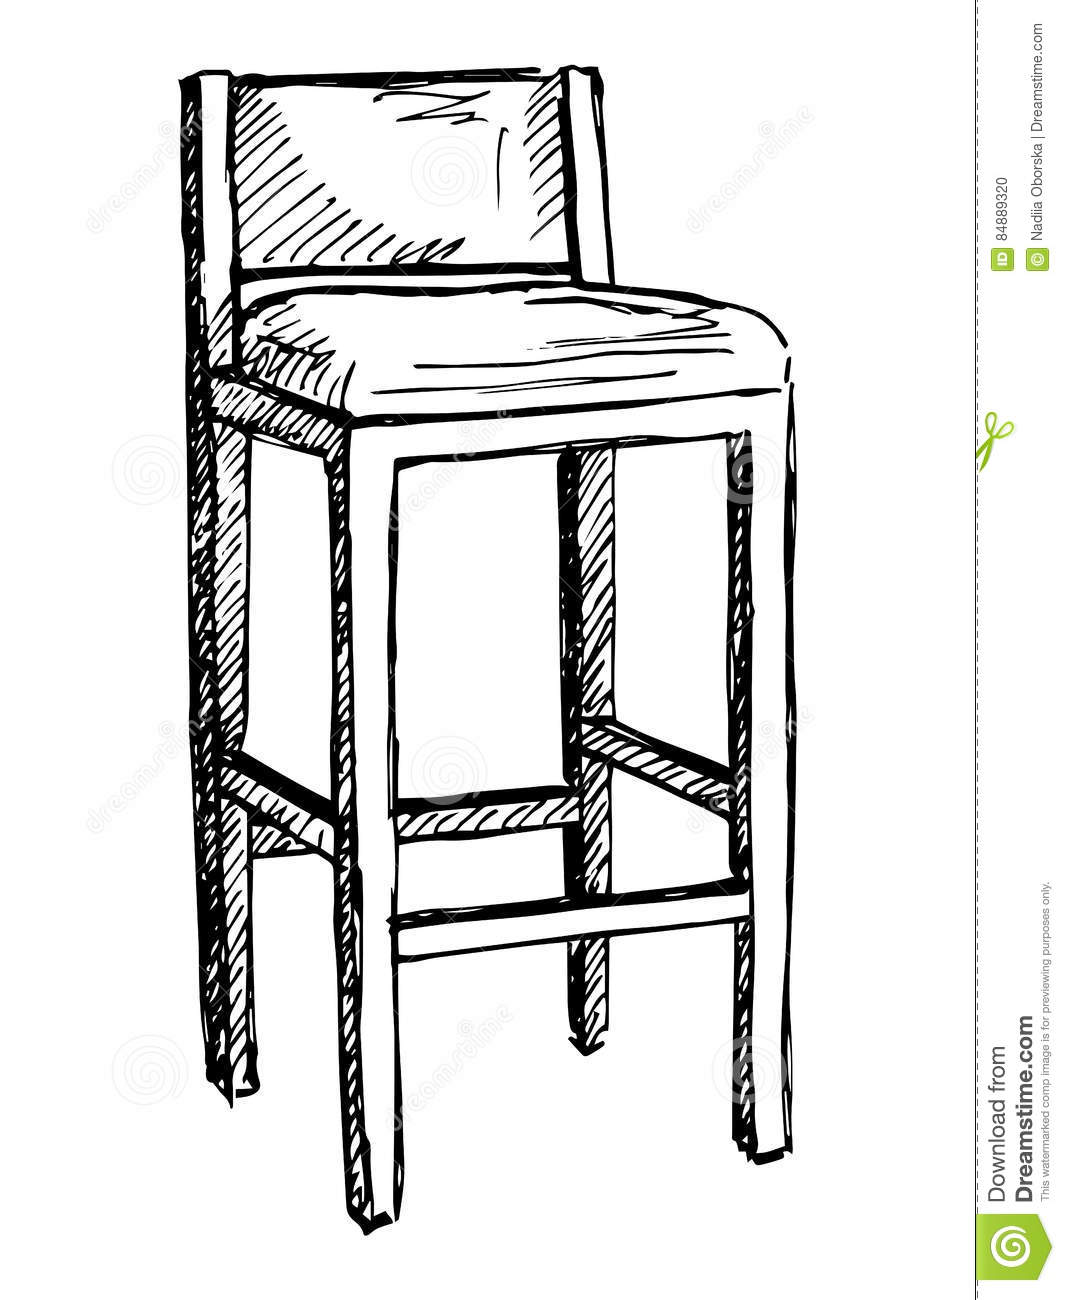 Barre Sur Le Illustration Vecteur Chaise Isolat De Blanc Fond 9HeD2EWYI